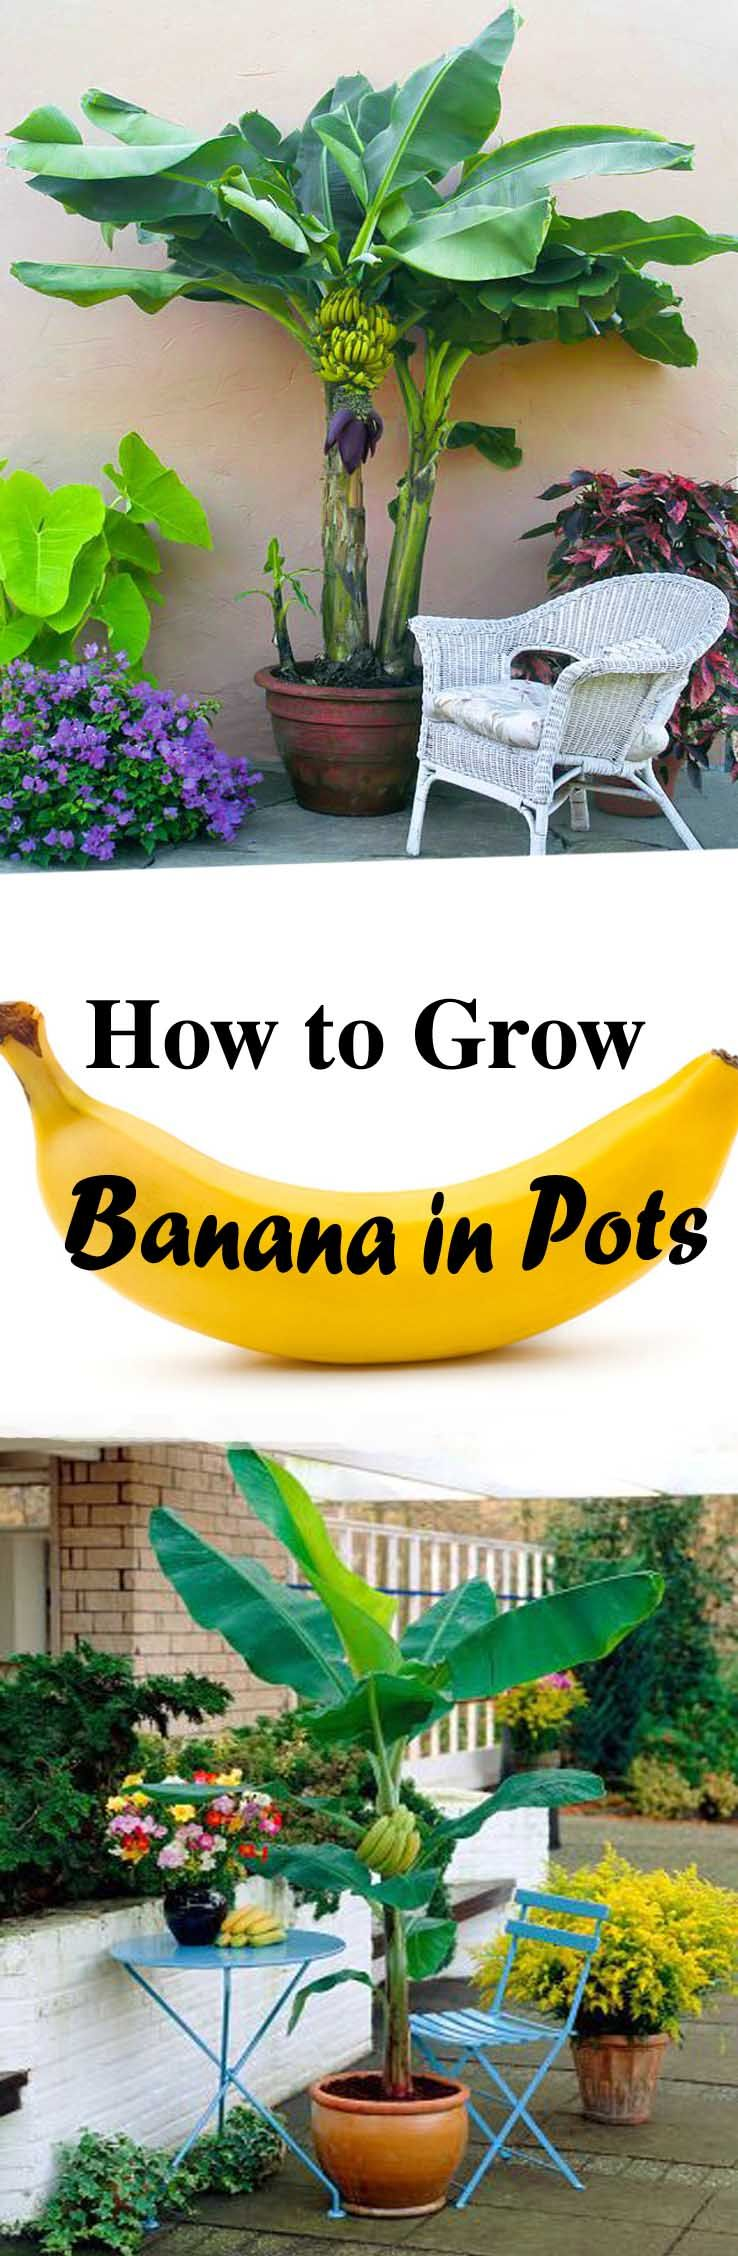 How To Grow Banana In A Pot - FREECYCLE